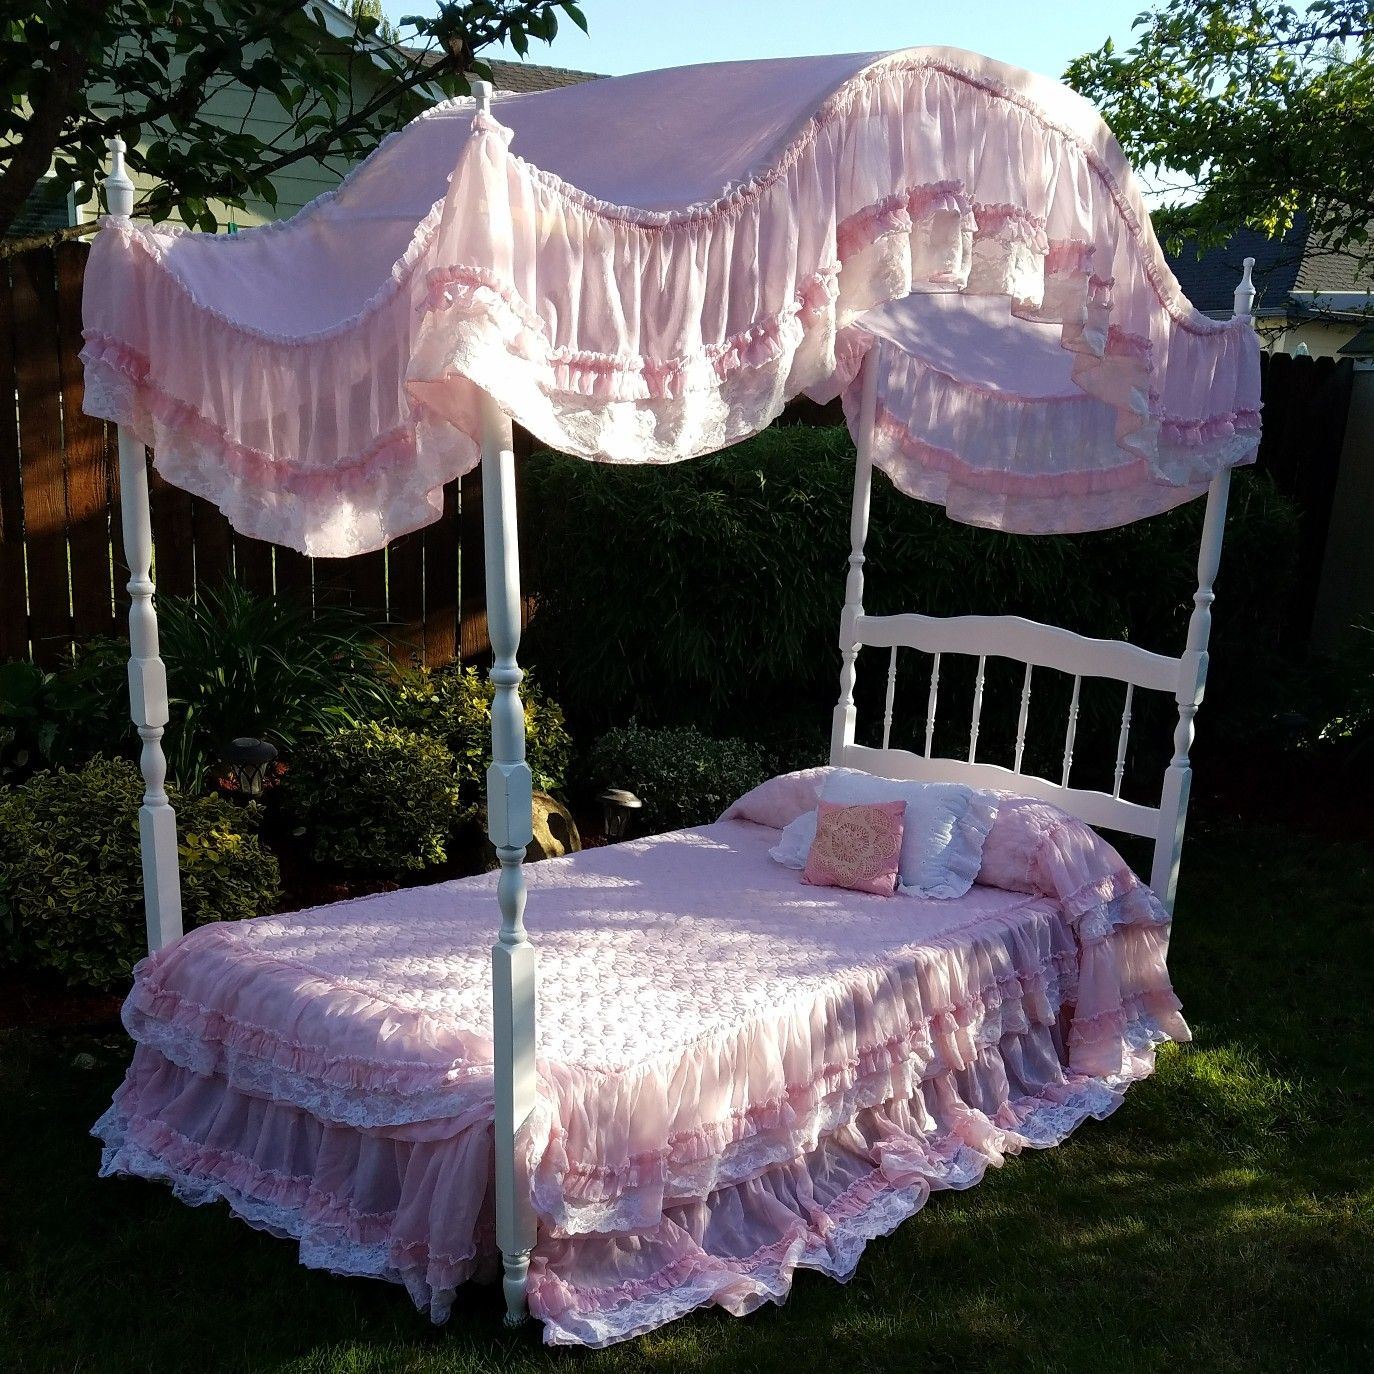 Sears Bonnet Bedroom Set Canopy Bed Canopy Bedroom Sets Canopy